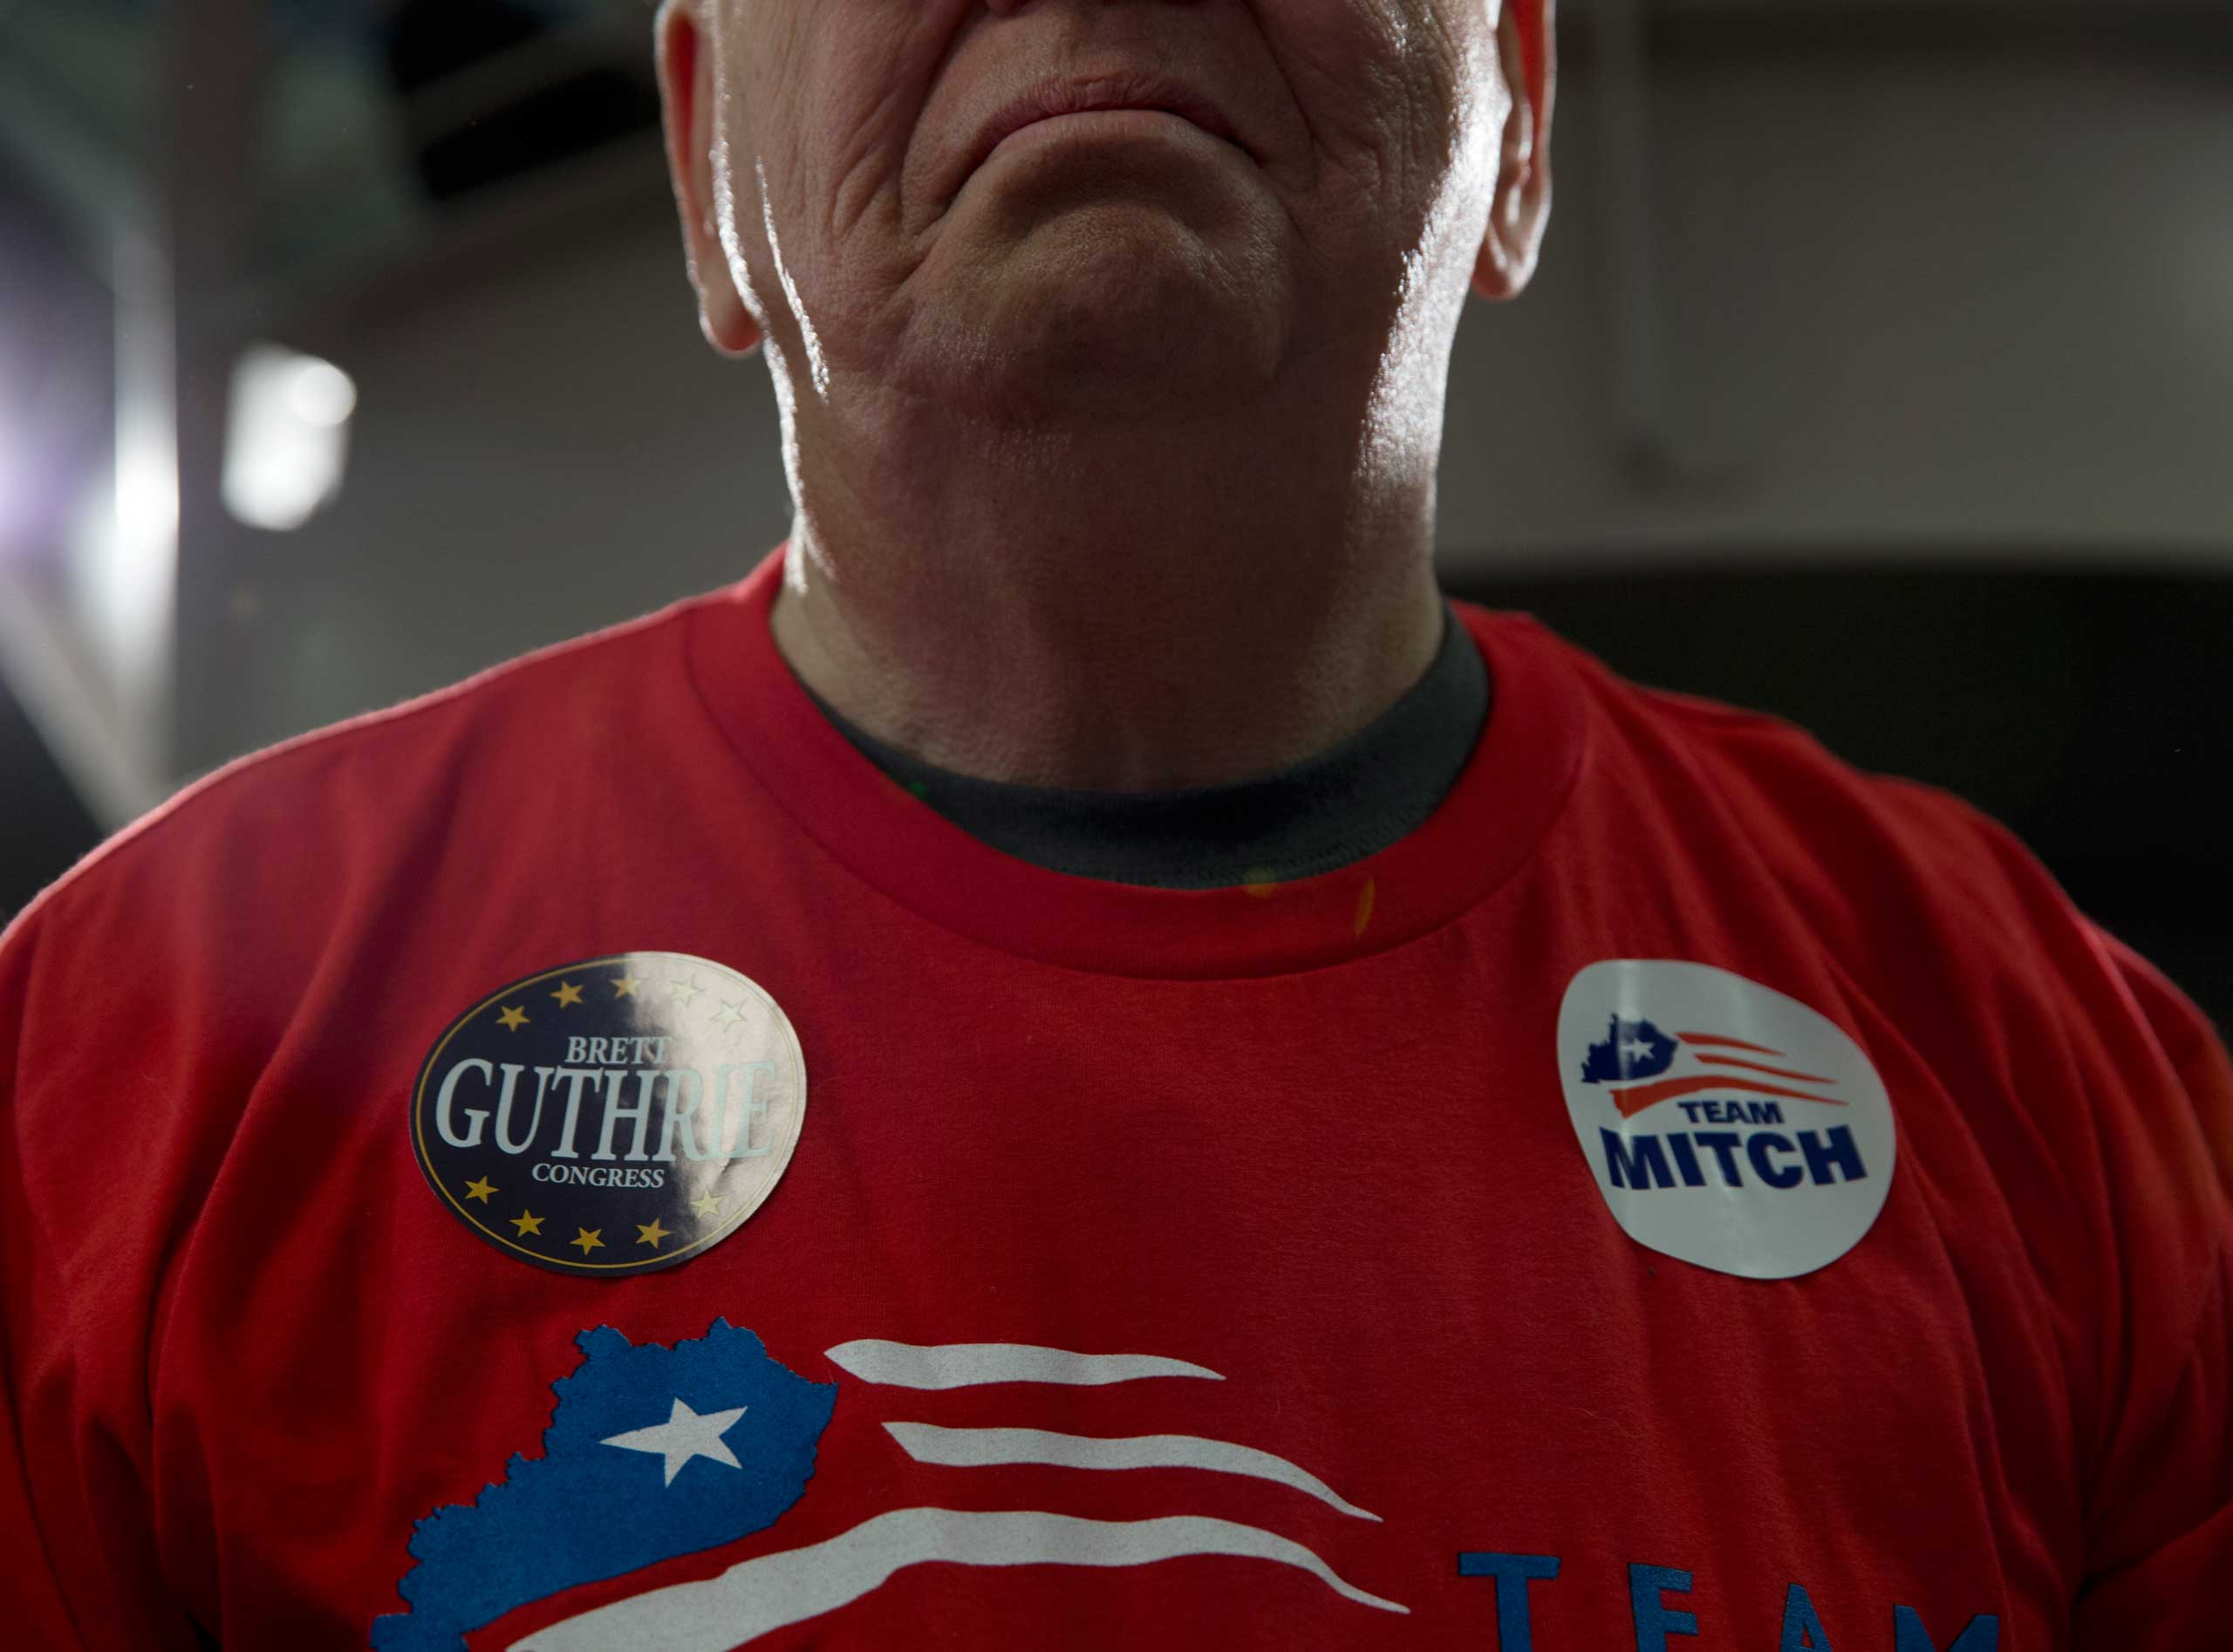 A supporter of Sen. Mitch McConnell is seen at a campaign rally at Bowling Green-Warren Co. Regional Airport in Bowling Green, Ky. on Nov. 3, 2014.